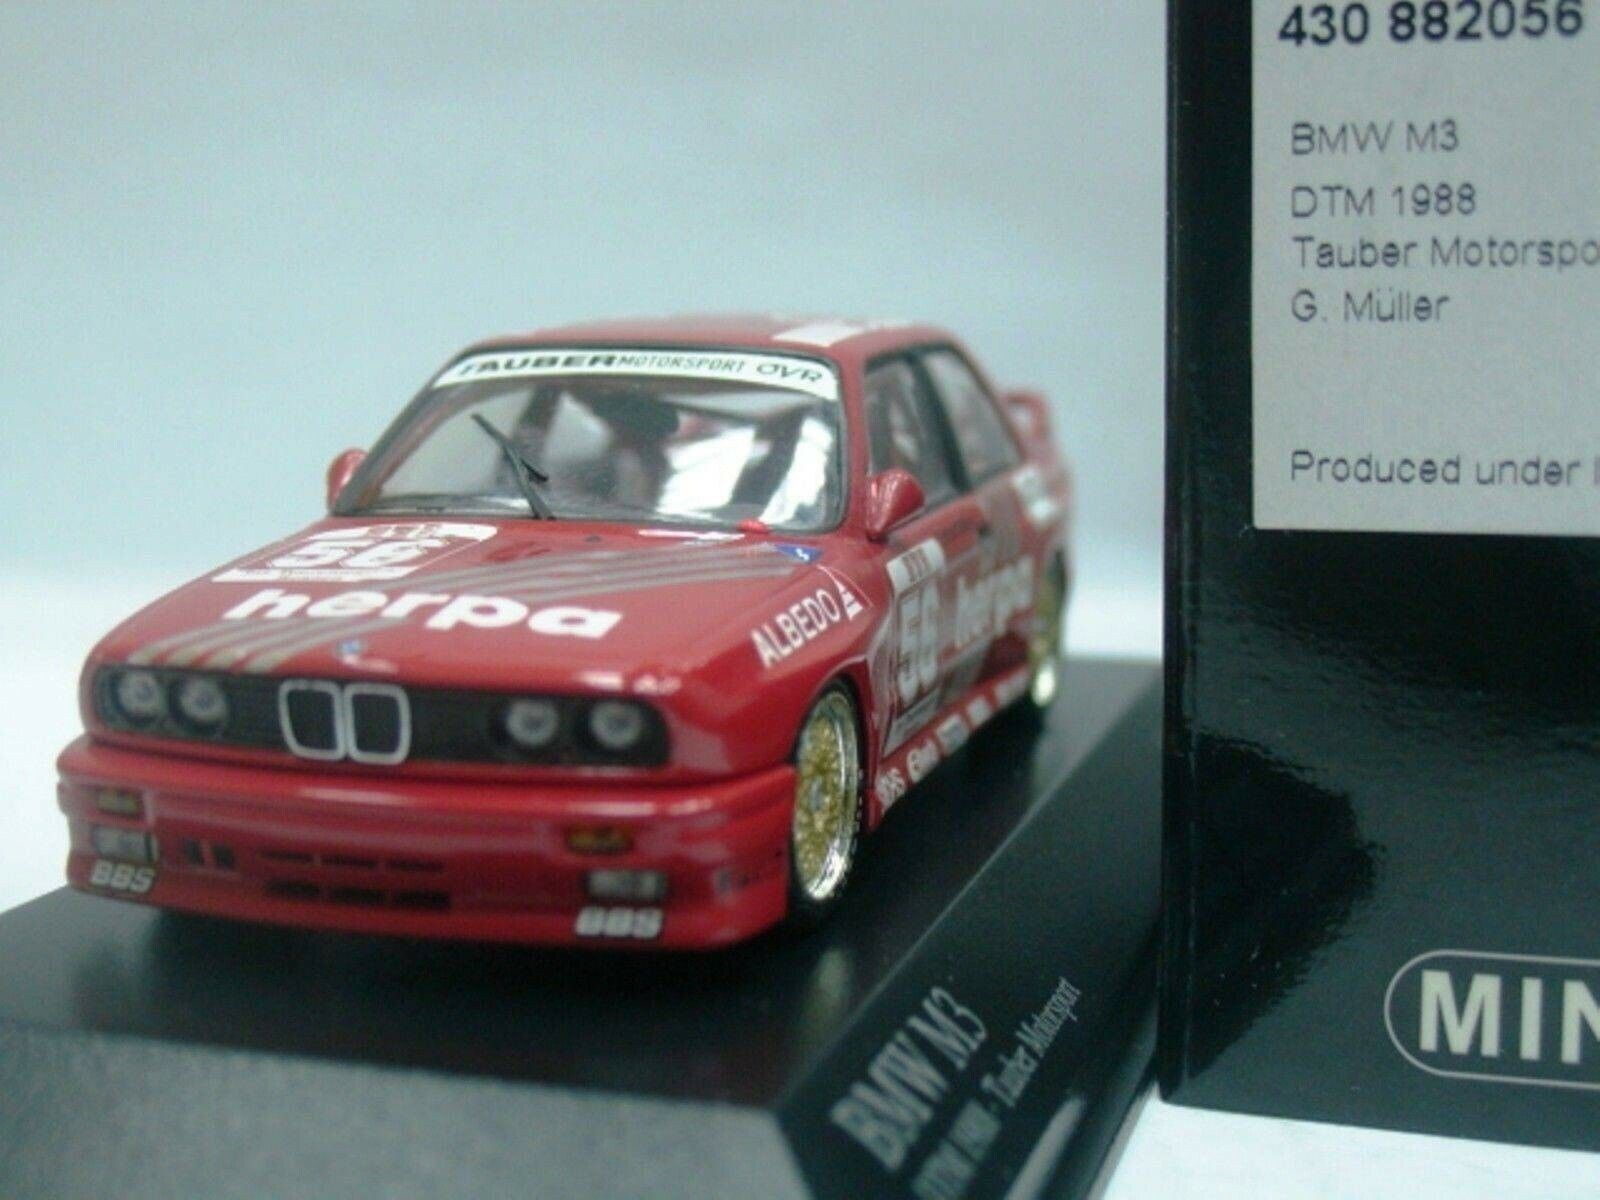 WOW EXTREMELY RARE BMW M3 E30 DTM 1988  56 Müller Zolder 1 43 Minichamps-635 E21